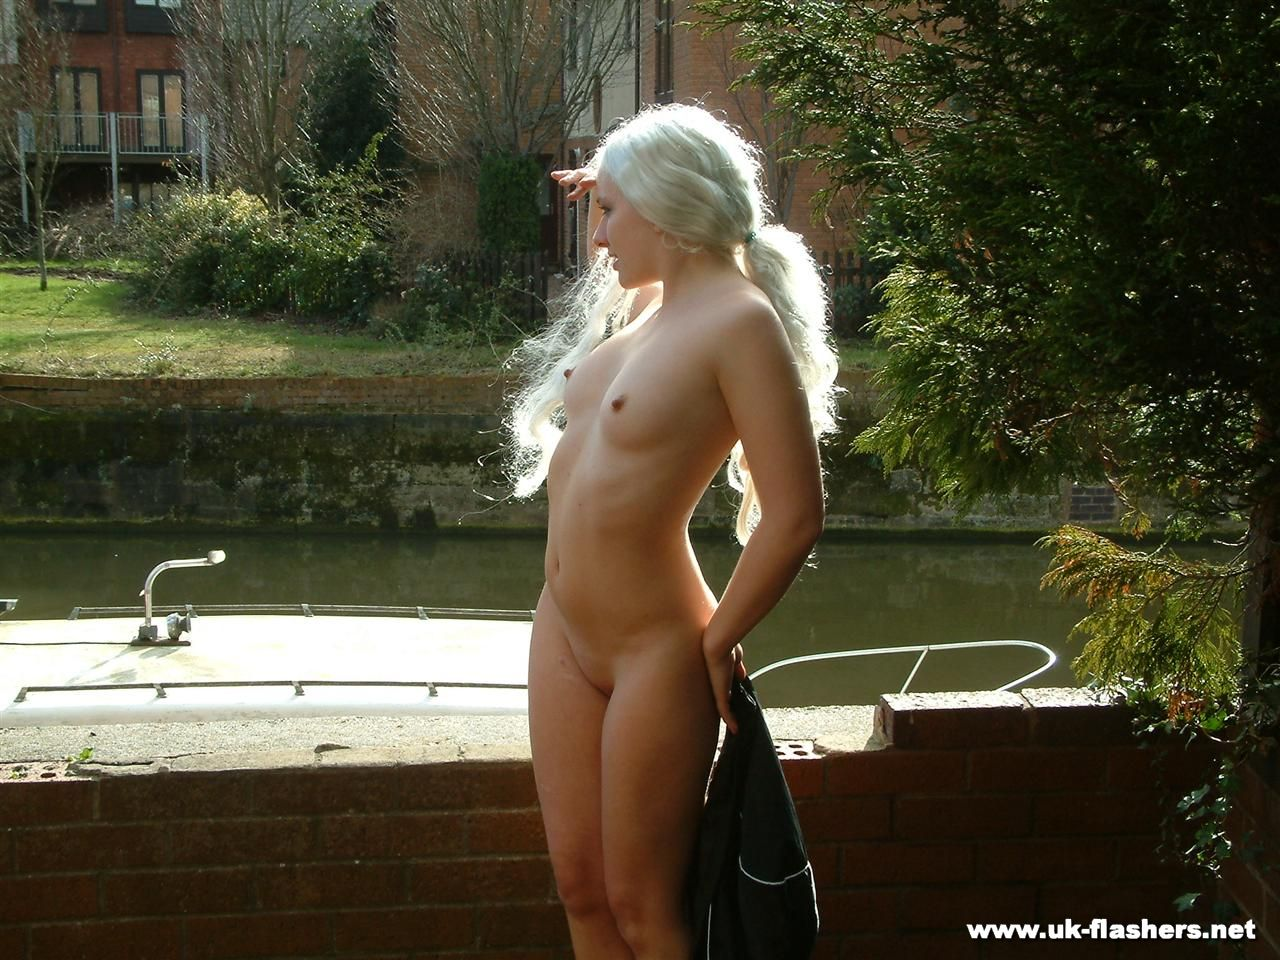 Platinum blonde chick gets completely naked on a boat dock before breast play